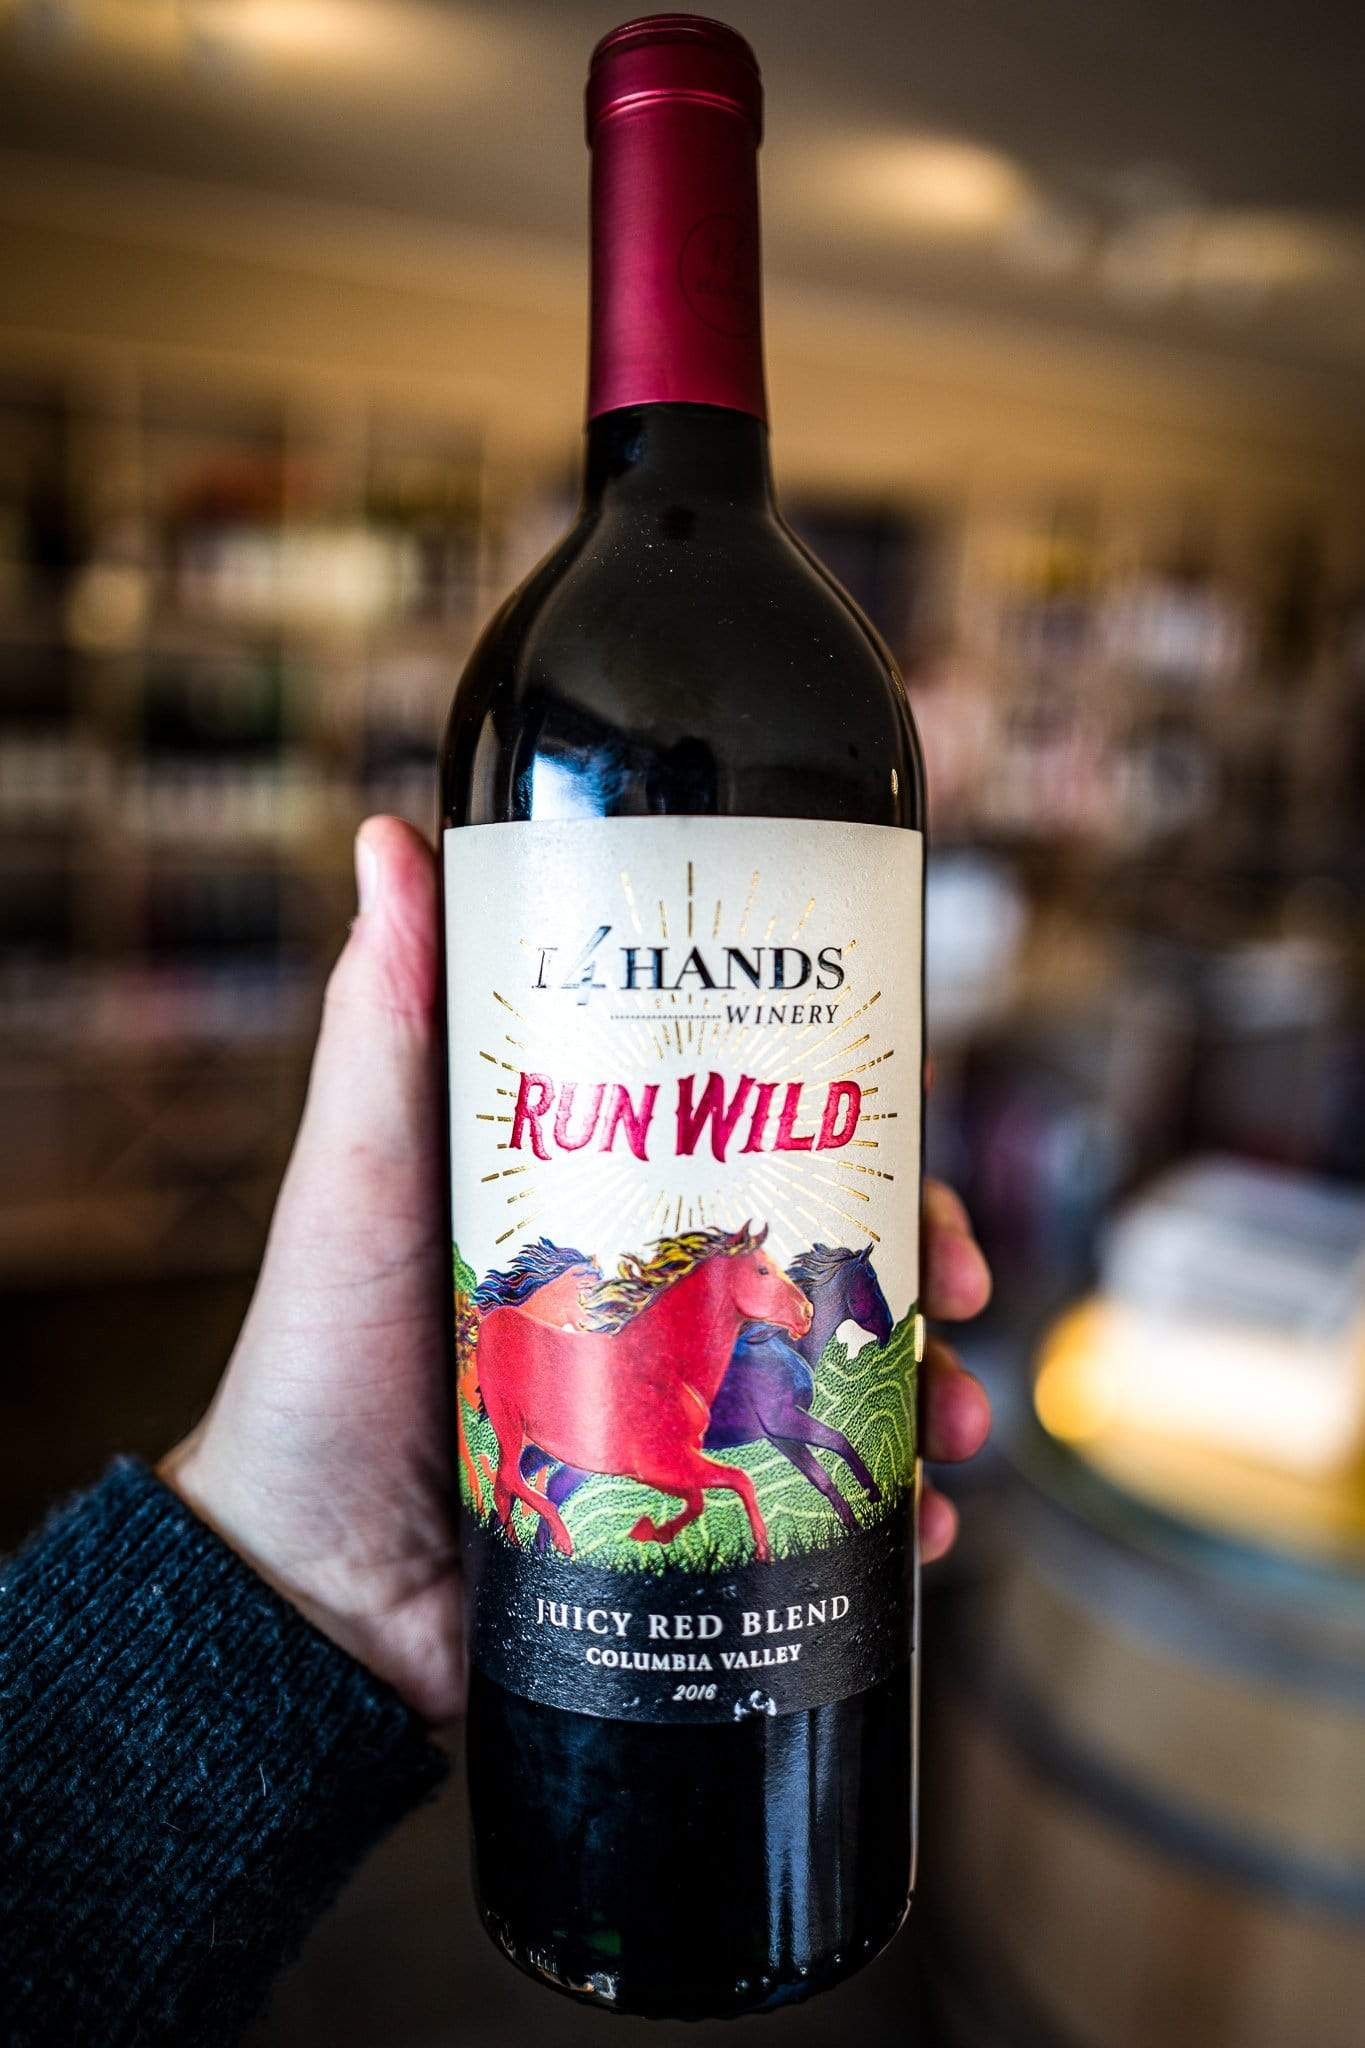 Image of 14 Hands Run Wild Juicy Red Blend 2016